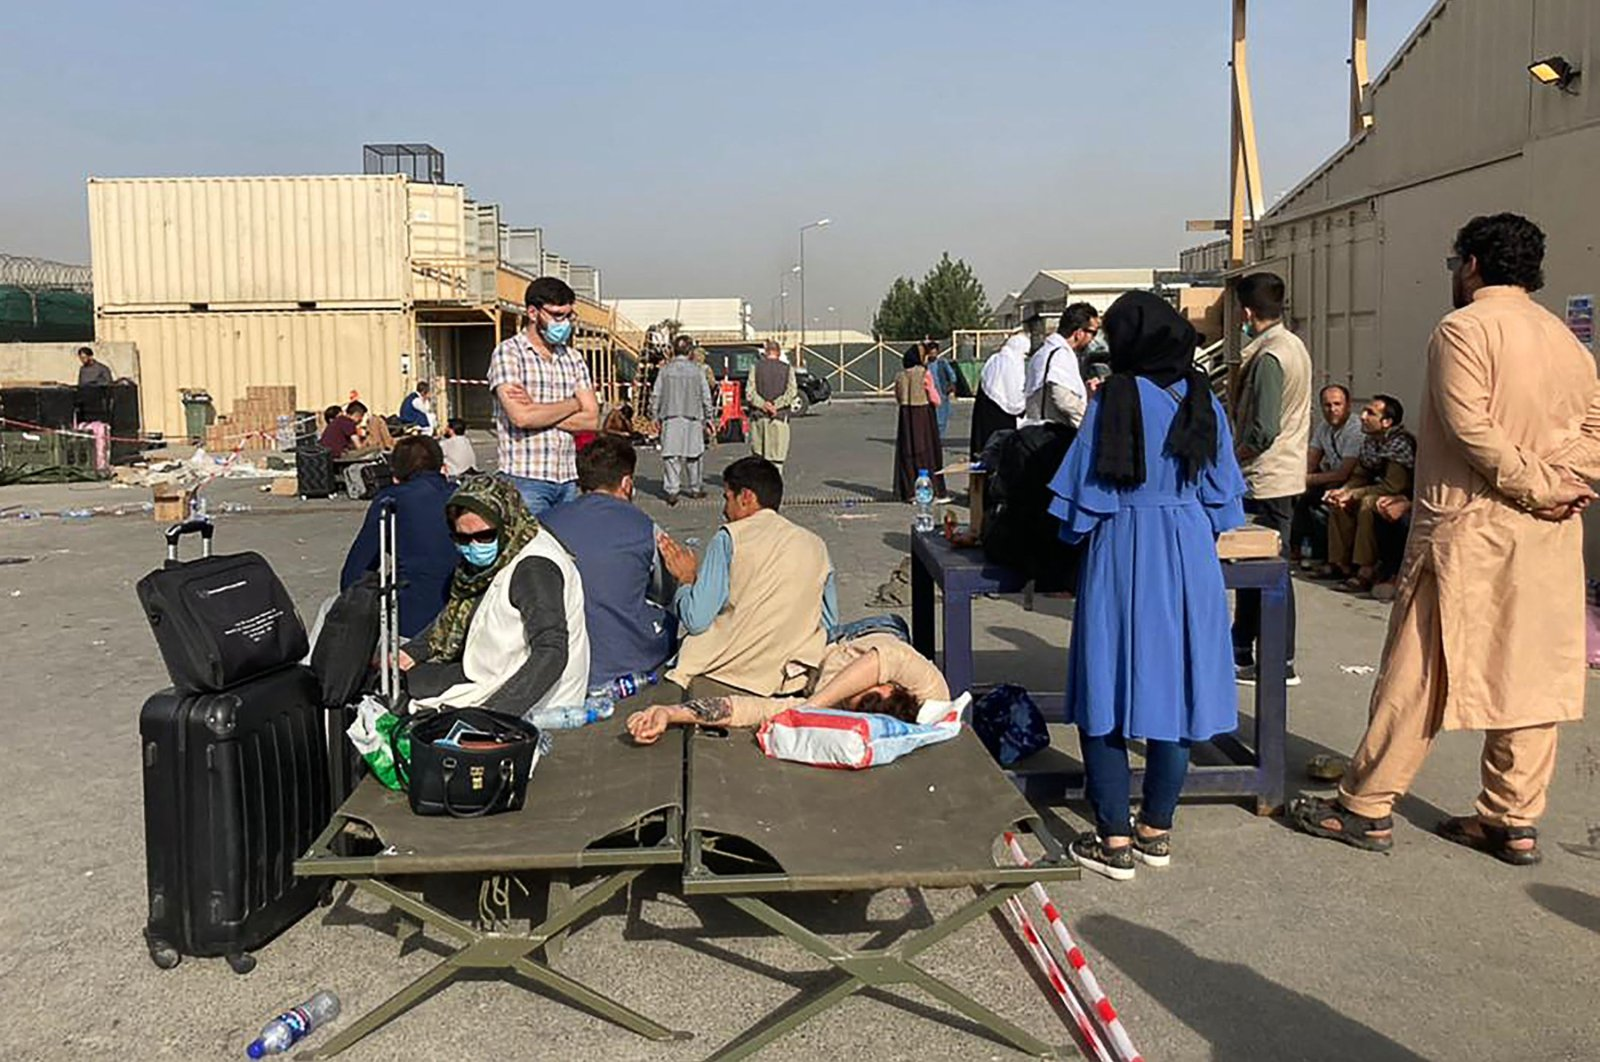 People wait to be evacuated from Afghanistan at the airport in Kabul on Aug. 18, 2021 following the stunning Taliban takeover of the country. (AFP Photo)